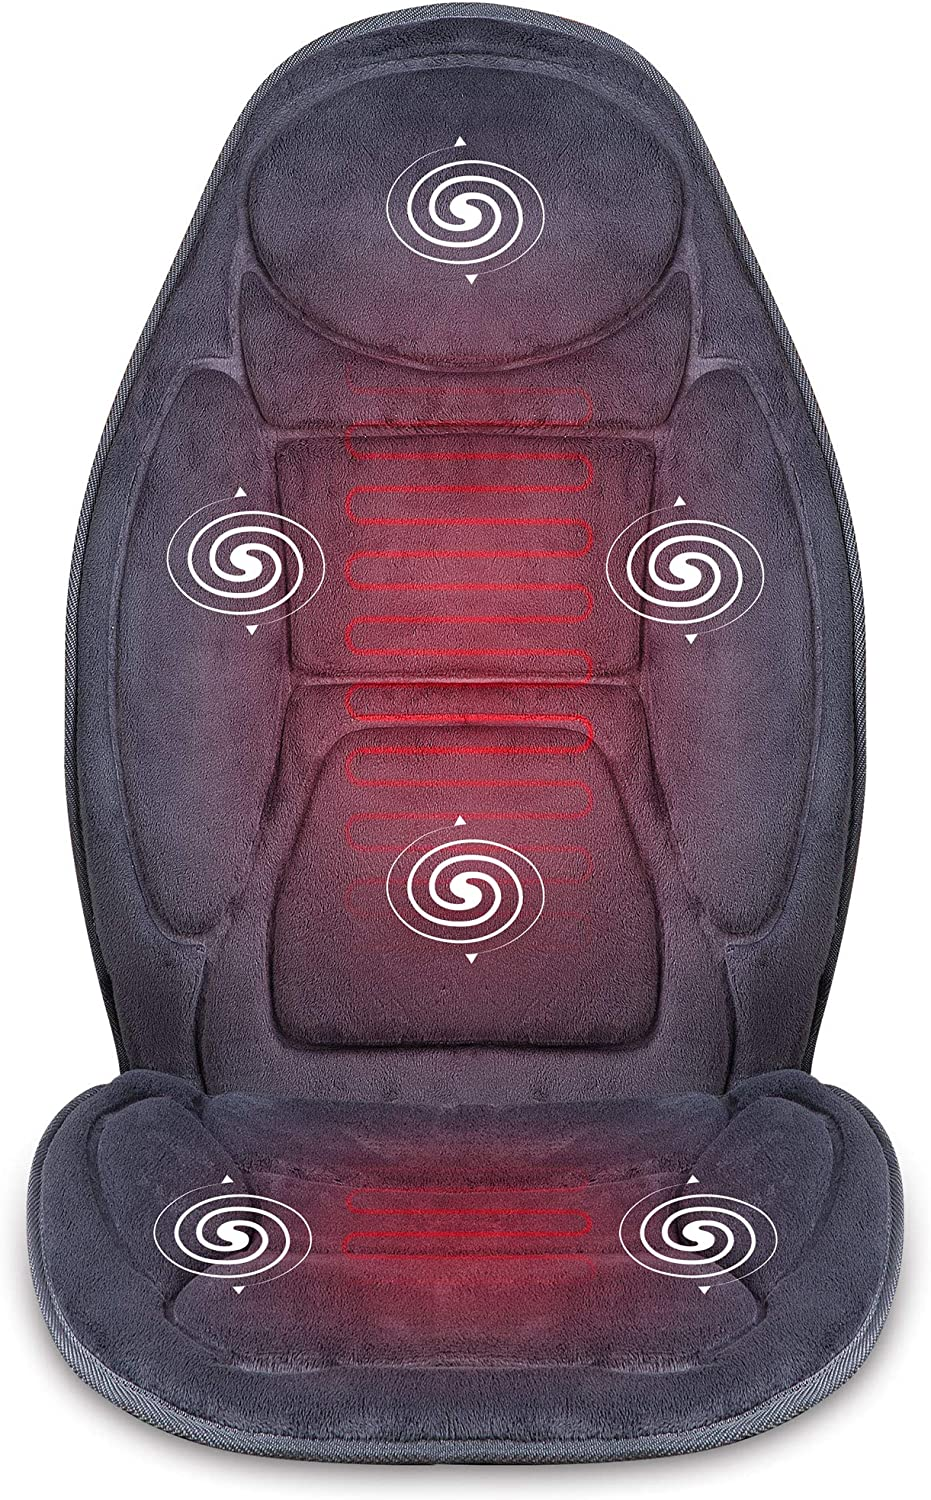 SNAILAX Vibration Massage Seat Cushion with Heat 6 Vibrating Motors and 3 Therapy Heating Pad, Back Massager, Massage Chair Pad for Home Office Car use